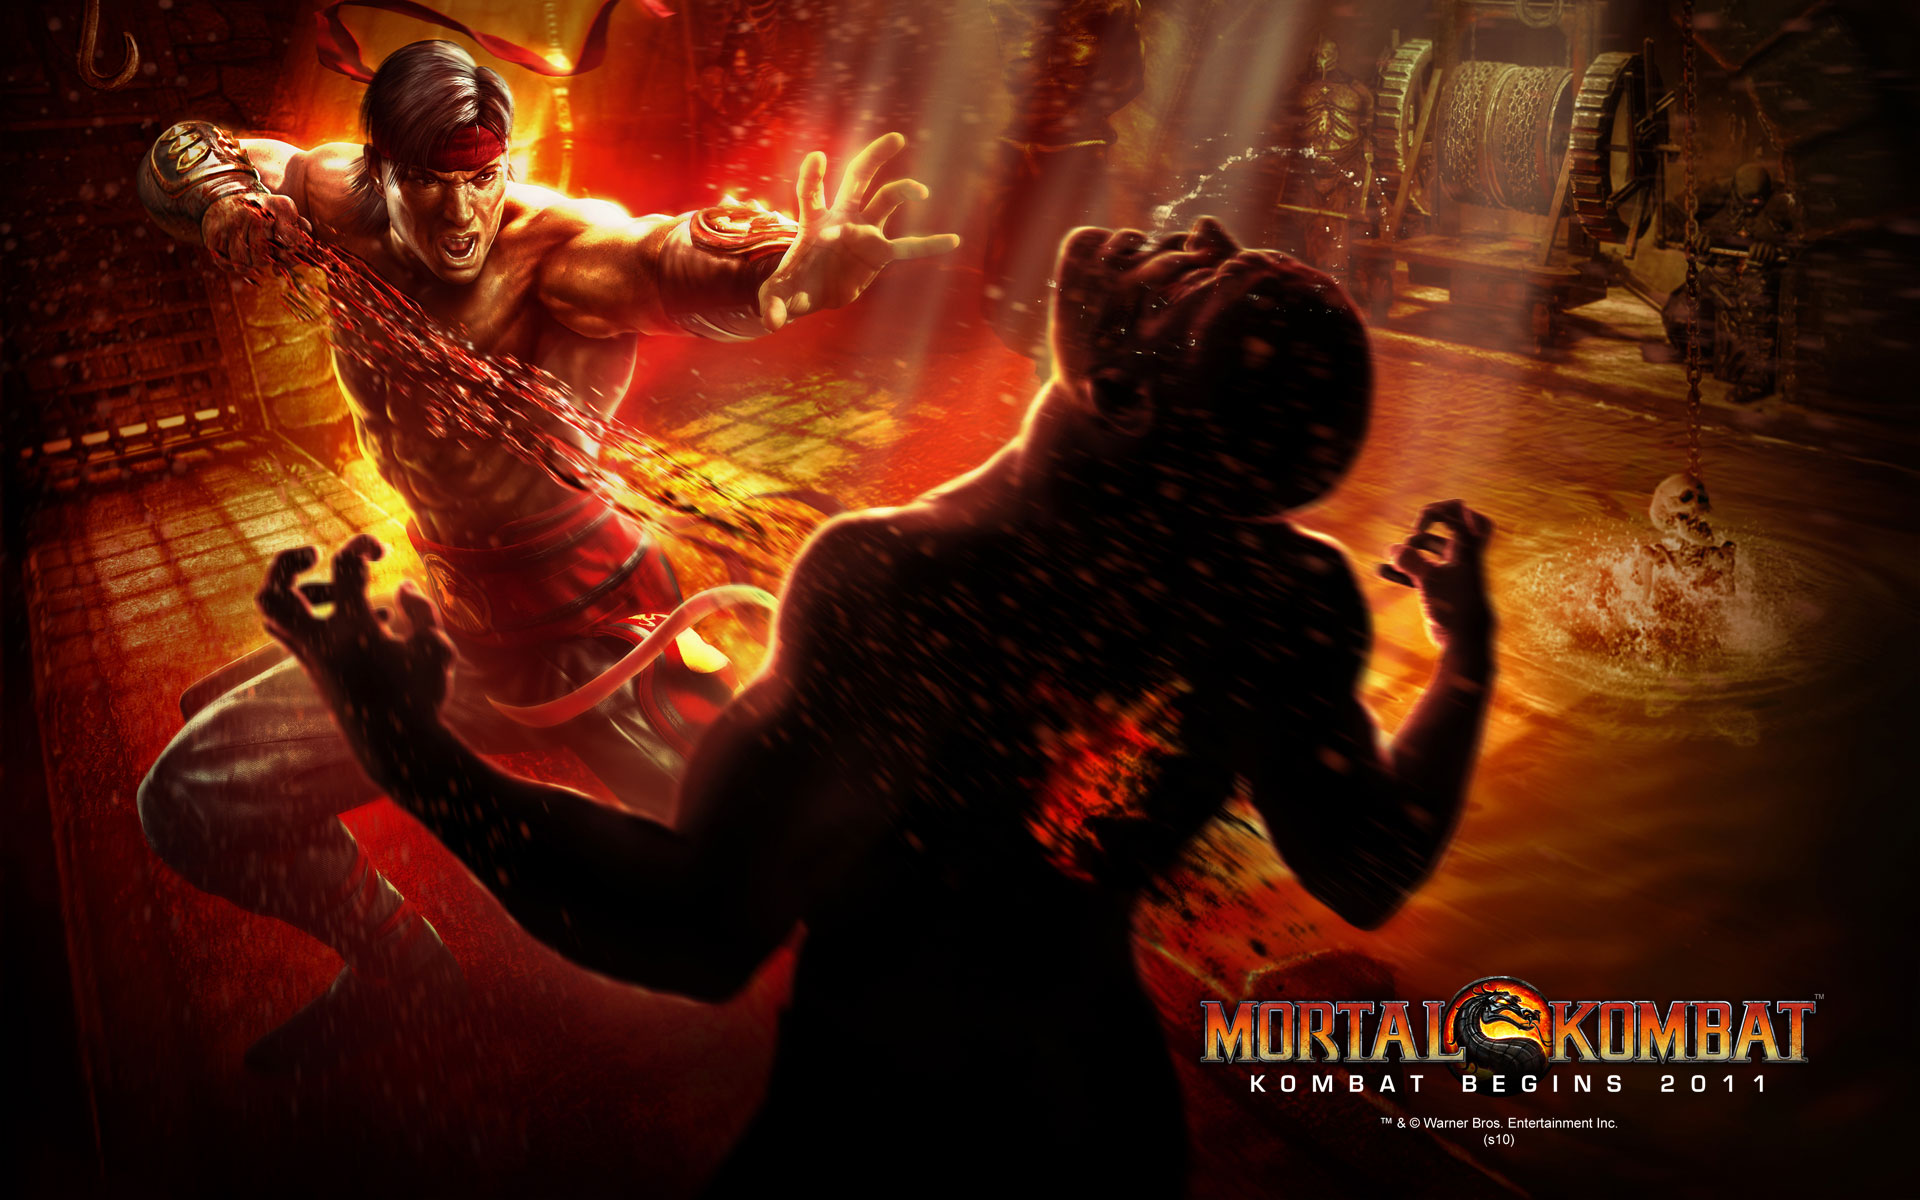 Wallpapers de Mortal kombat 9